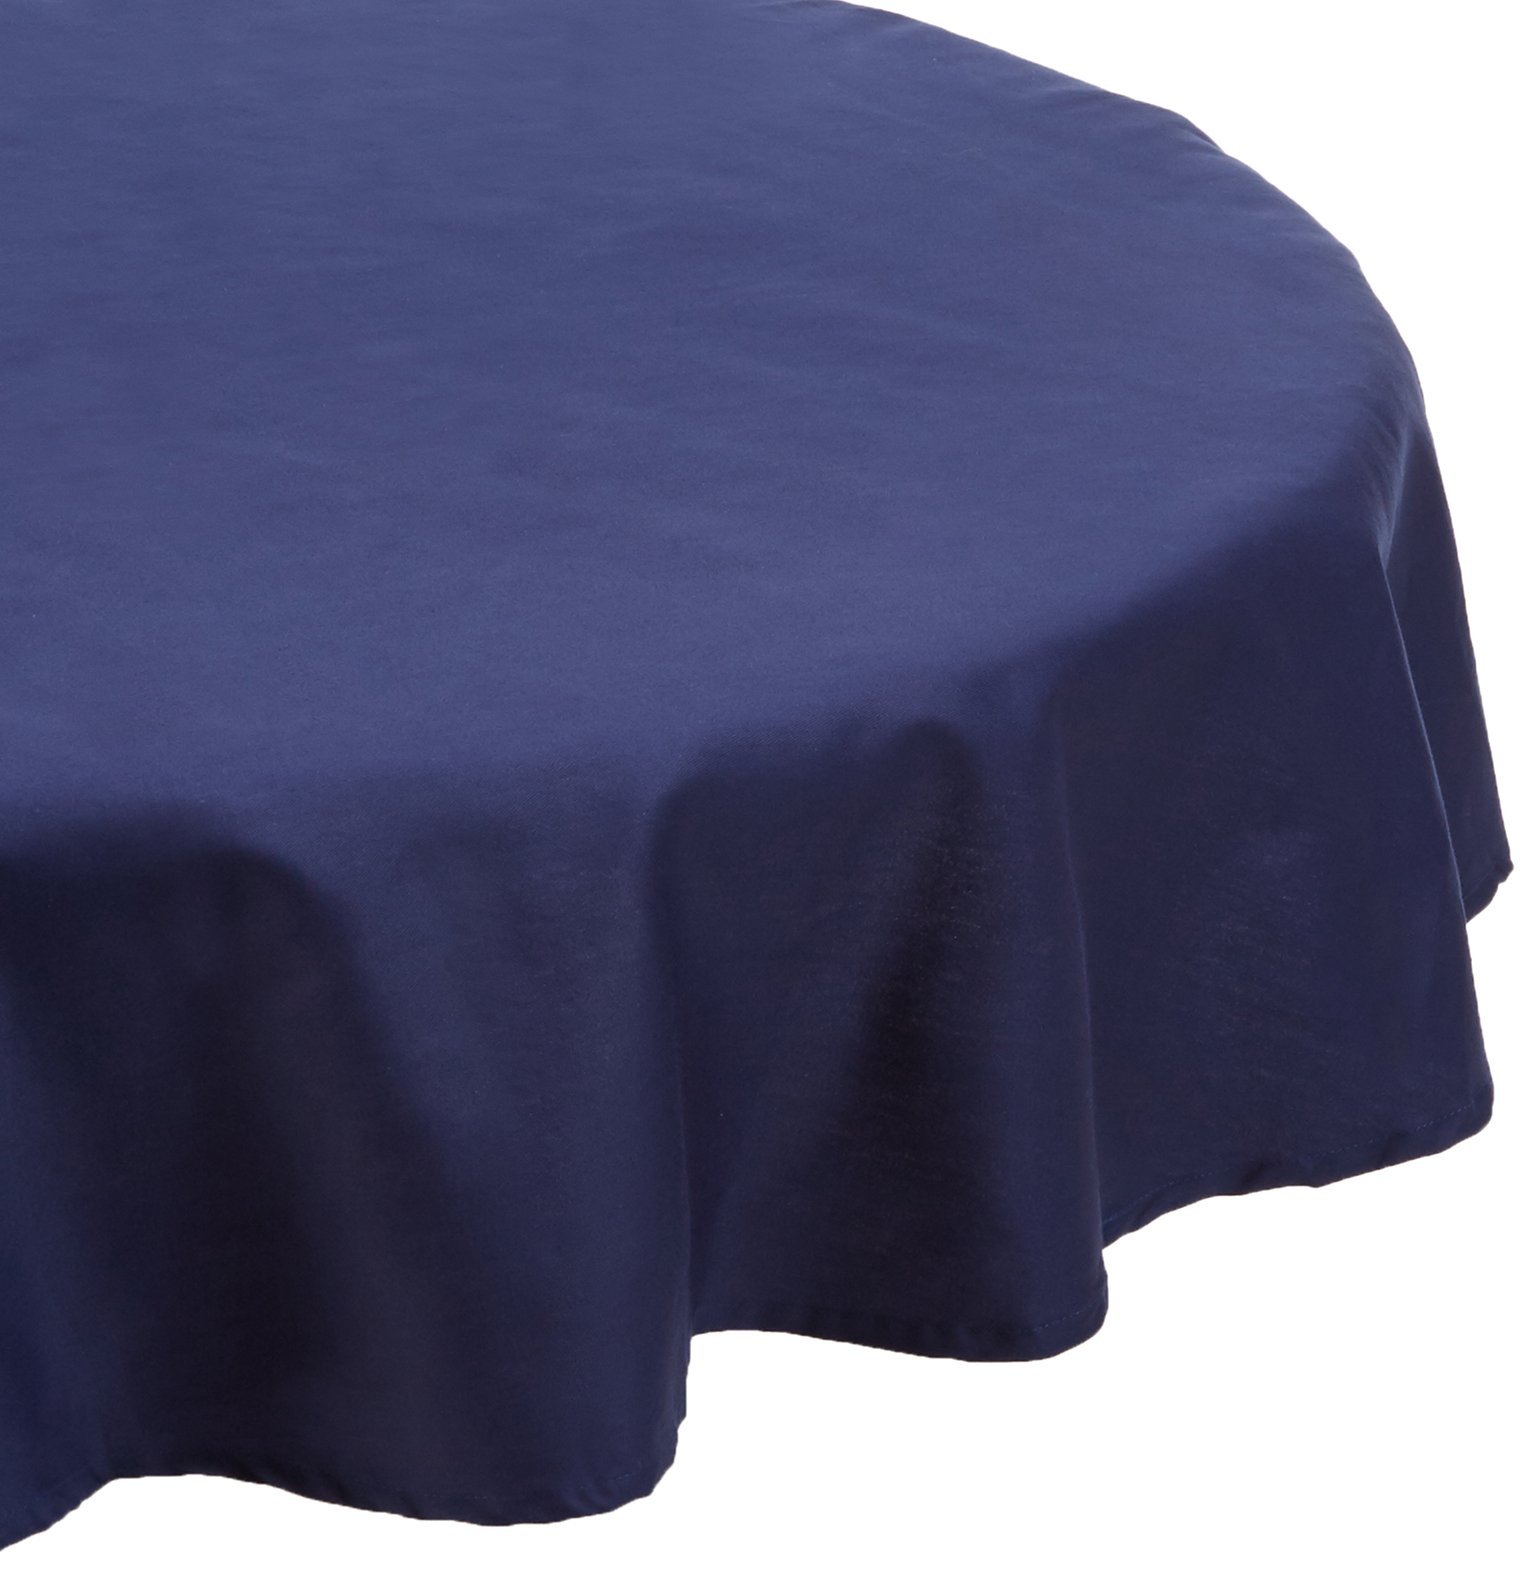 KAF Home Buffet Tablecloth in Navy, 70'' Round, 100% Cotton, Machine Washable by KAF Home